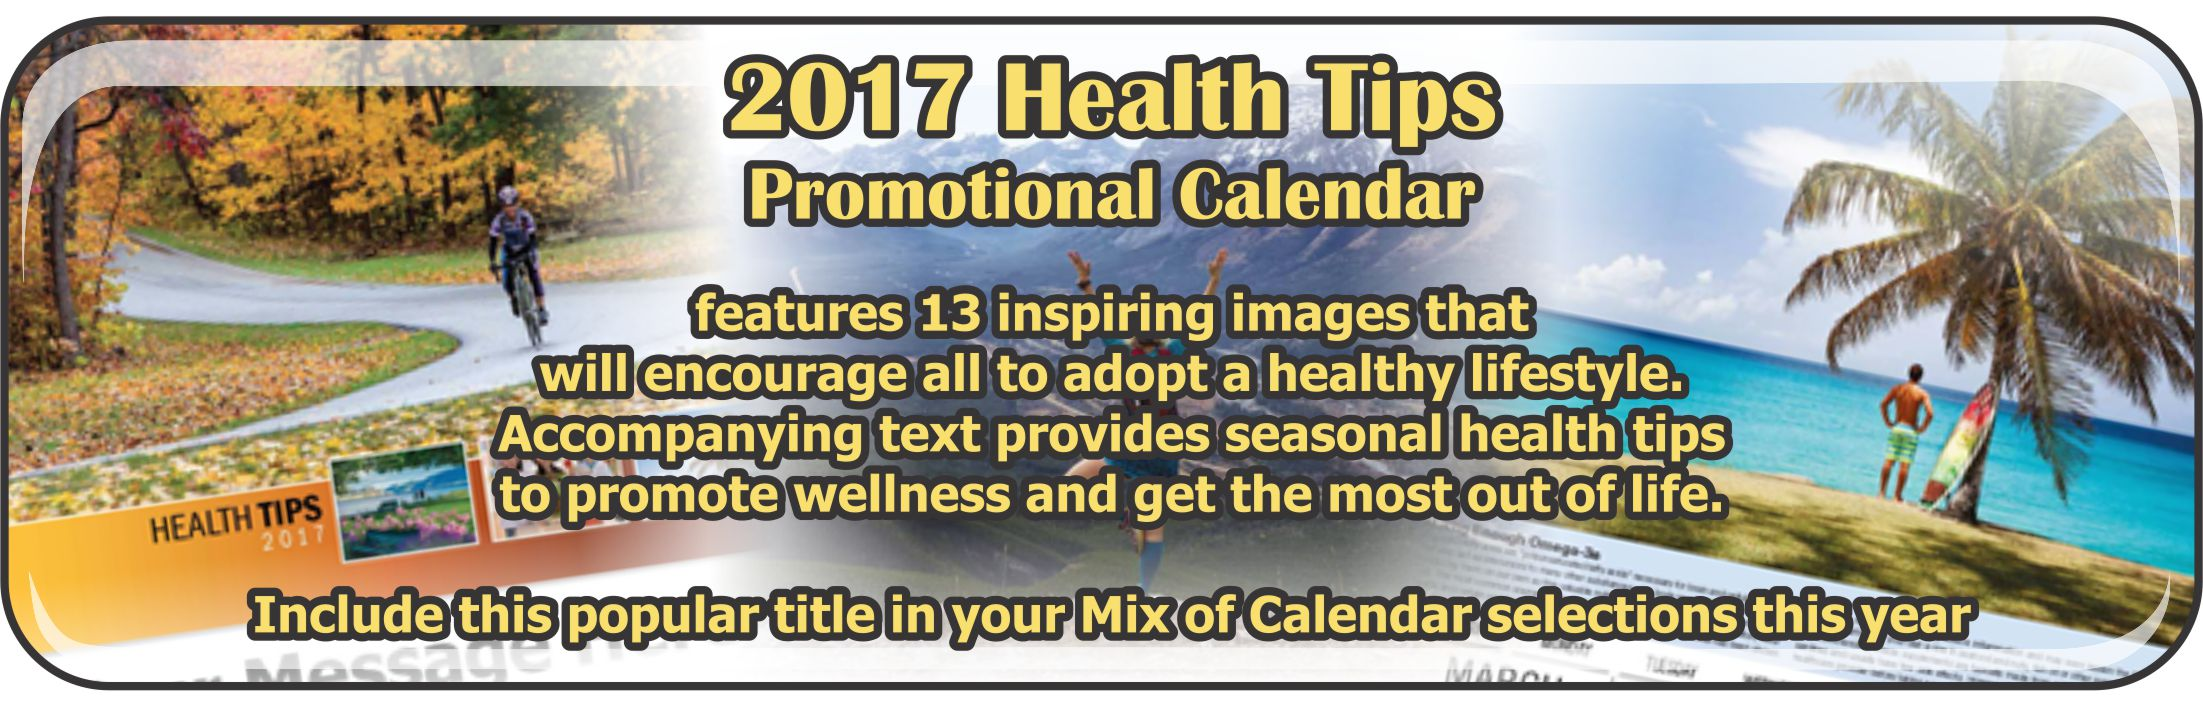 Promotional Calendars Direct featured Wall Calendar for Health Tips